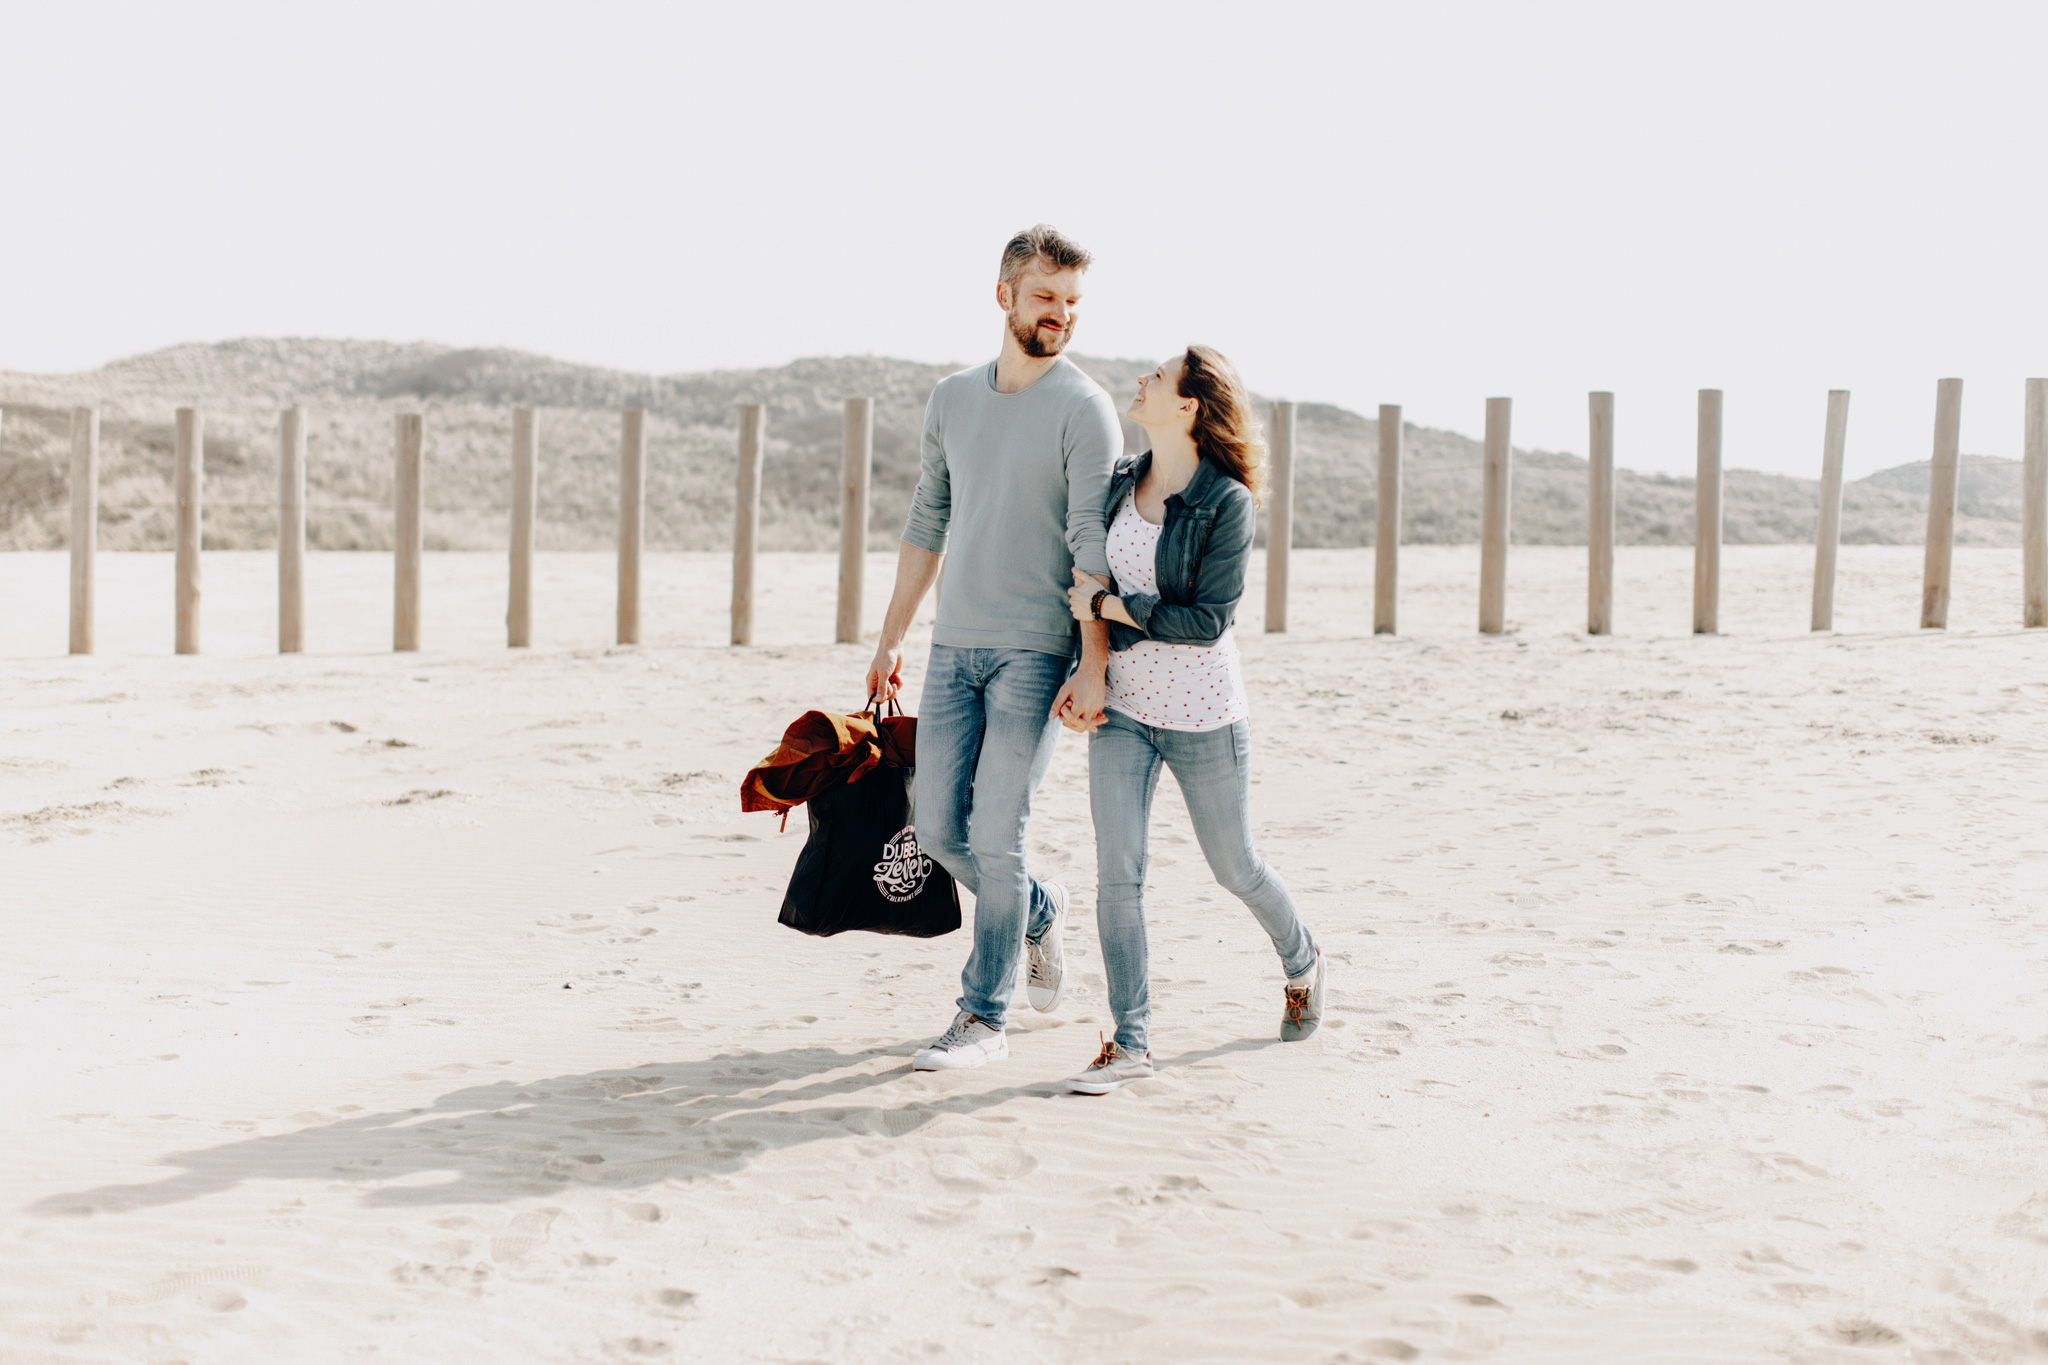 Couple walking at the beach smiling at each other